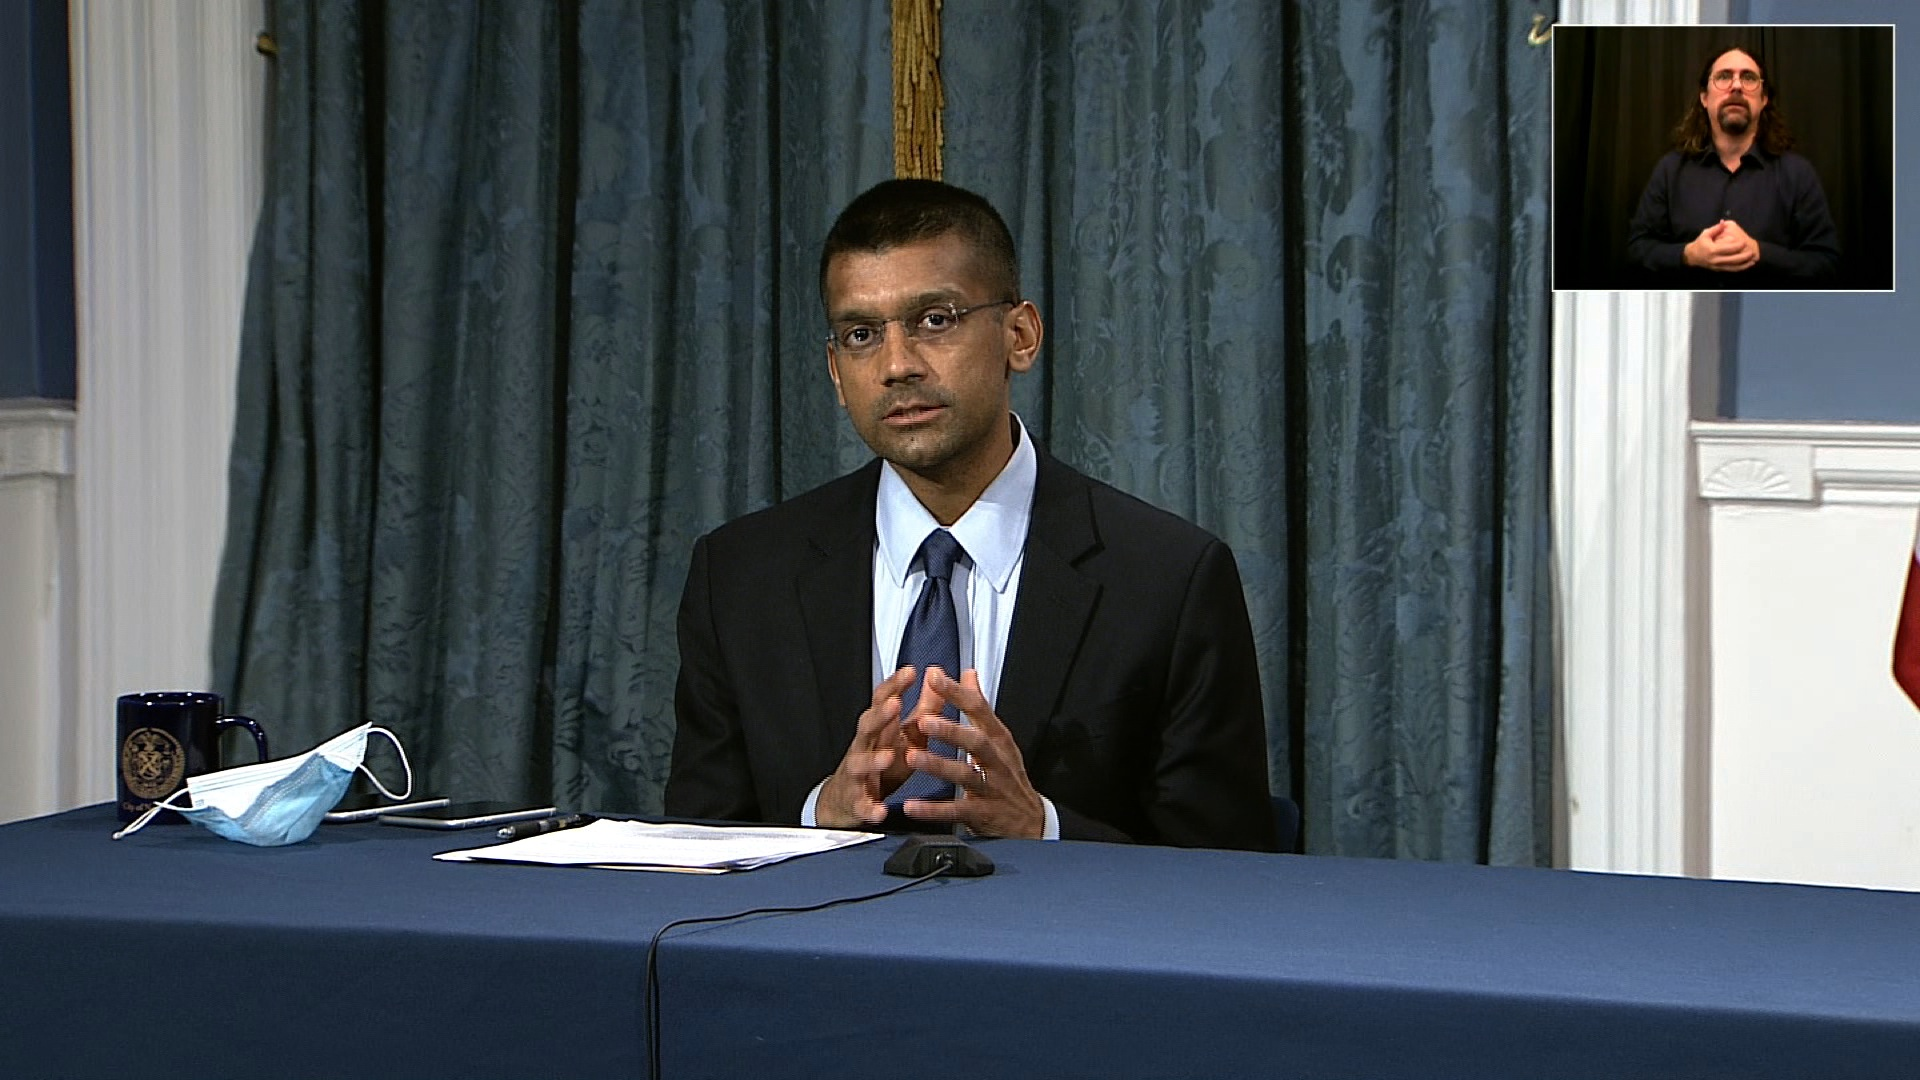 New York City's Department of Health Commissioner Dave Chokshi speaks during a news conference in New York on November 24.